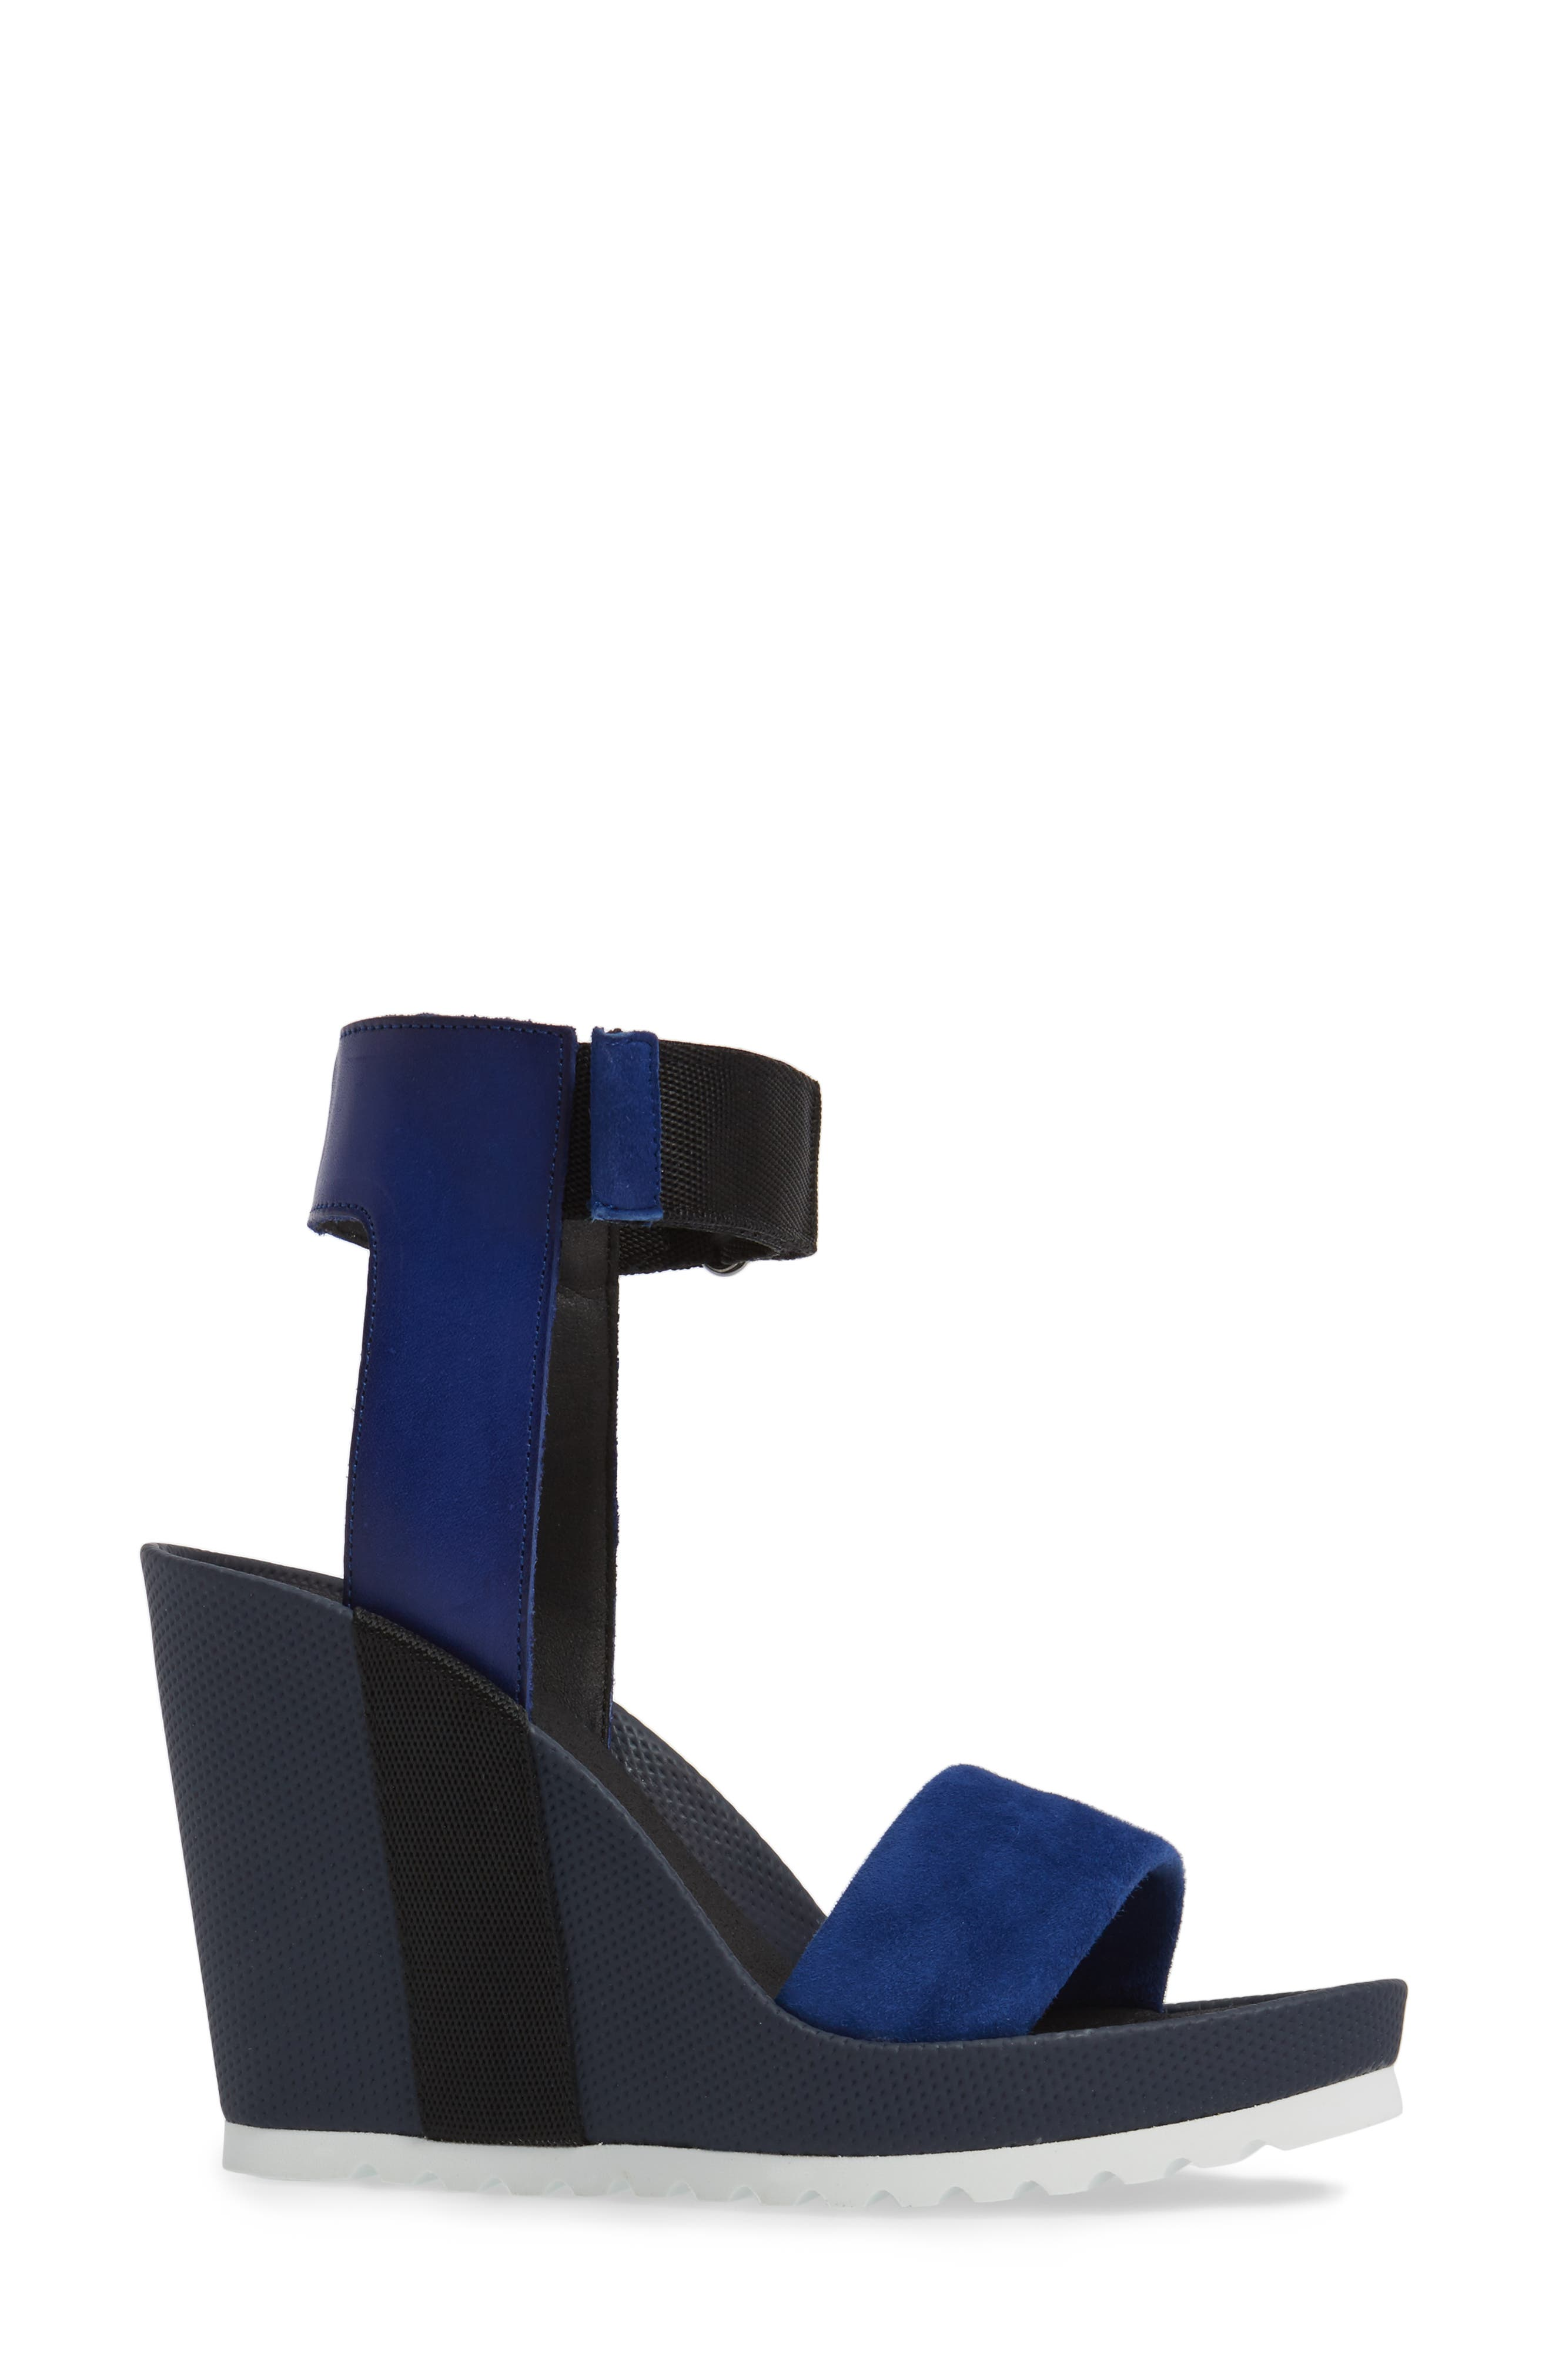 Kayleigh Wedge Sandal,                             Alternate thumbnail 3, color,                             Blue Multi Suede